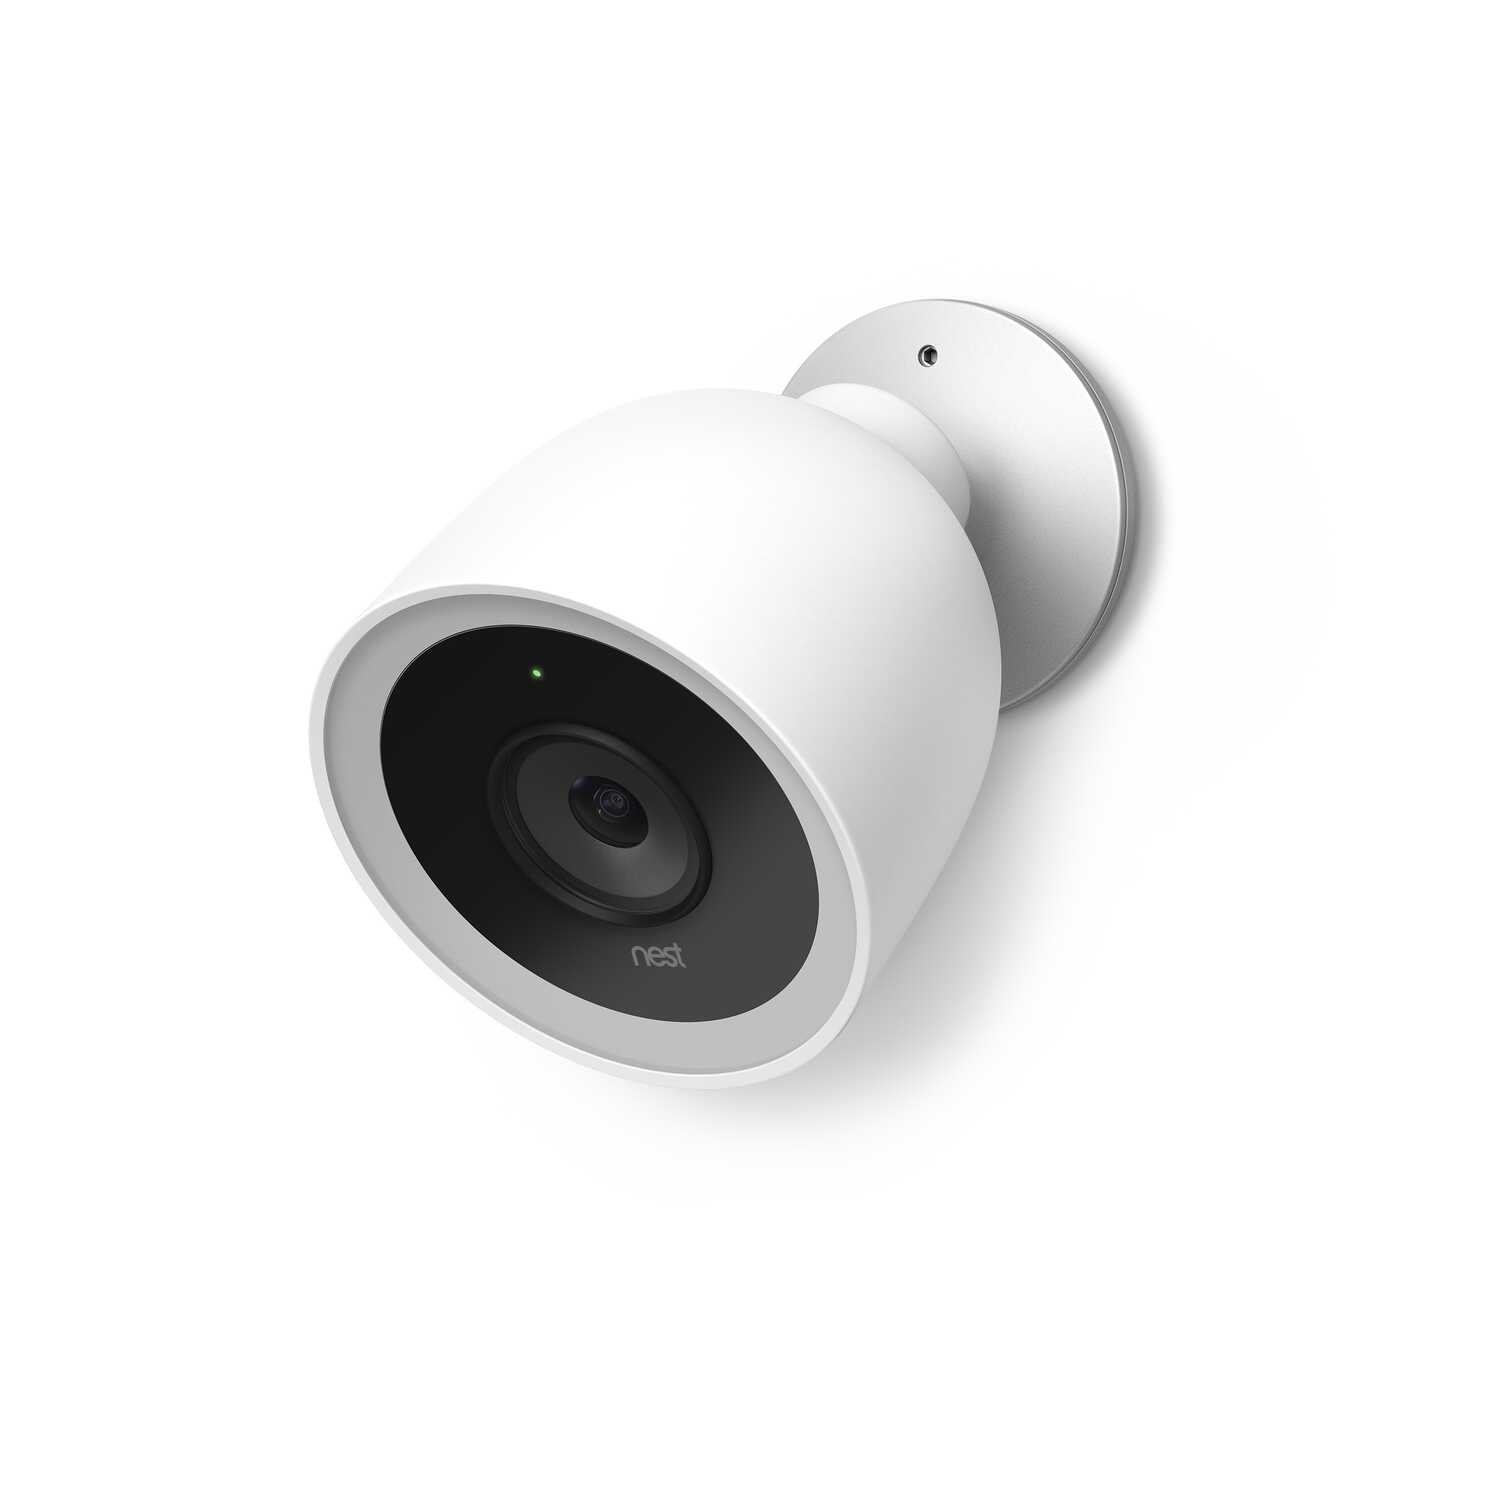 Nest  Plug-in  Outdoor  White  Wi-Fi Security Camera